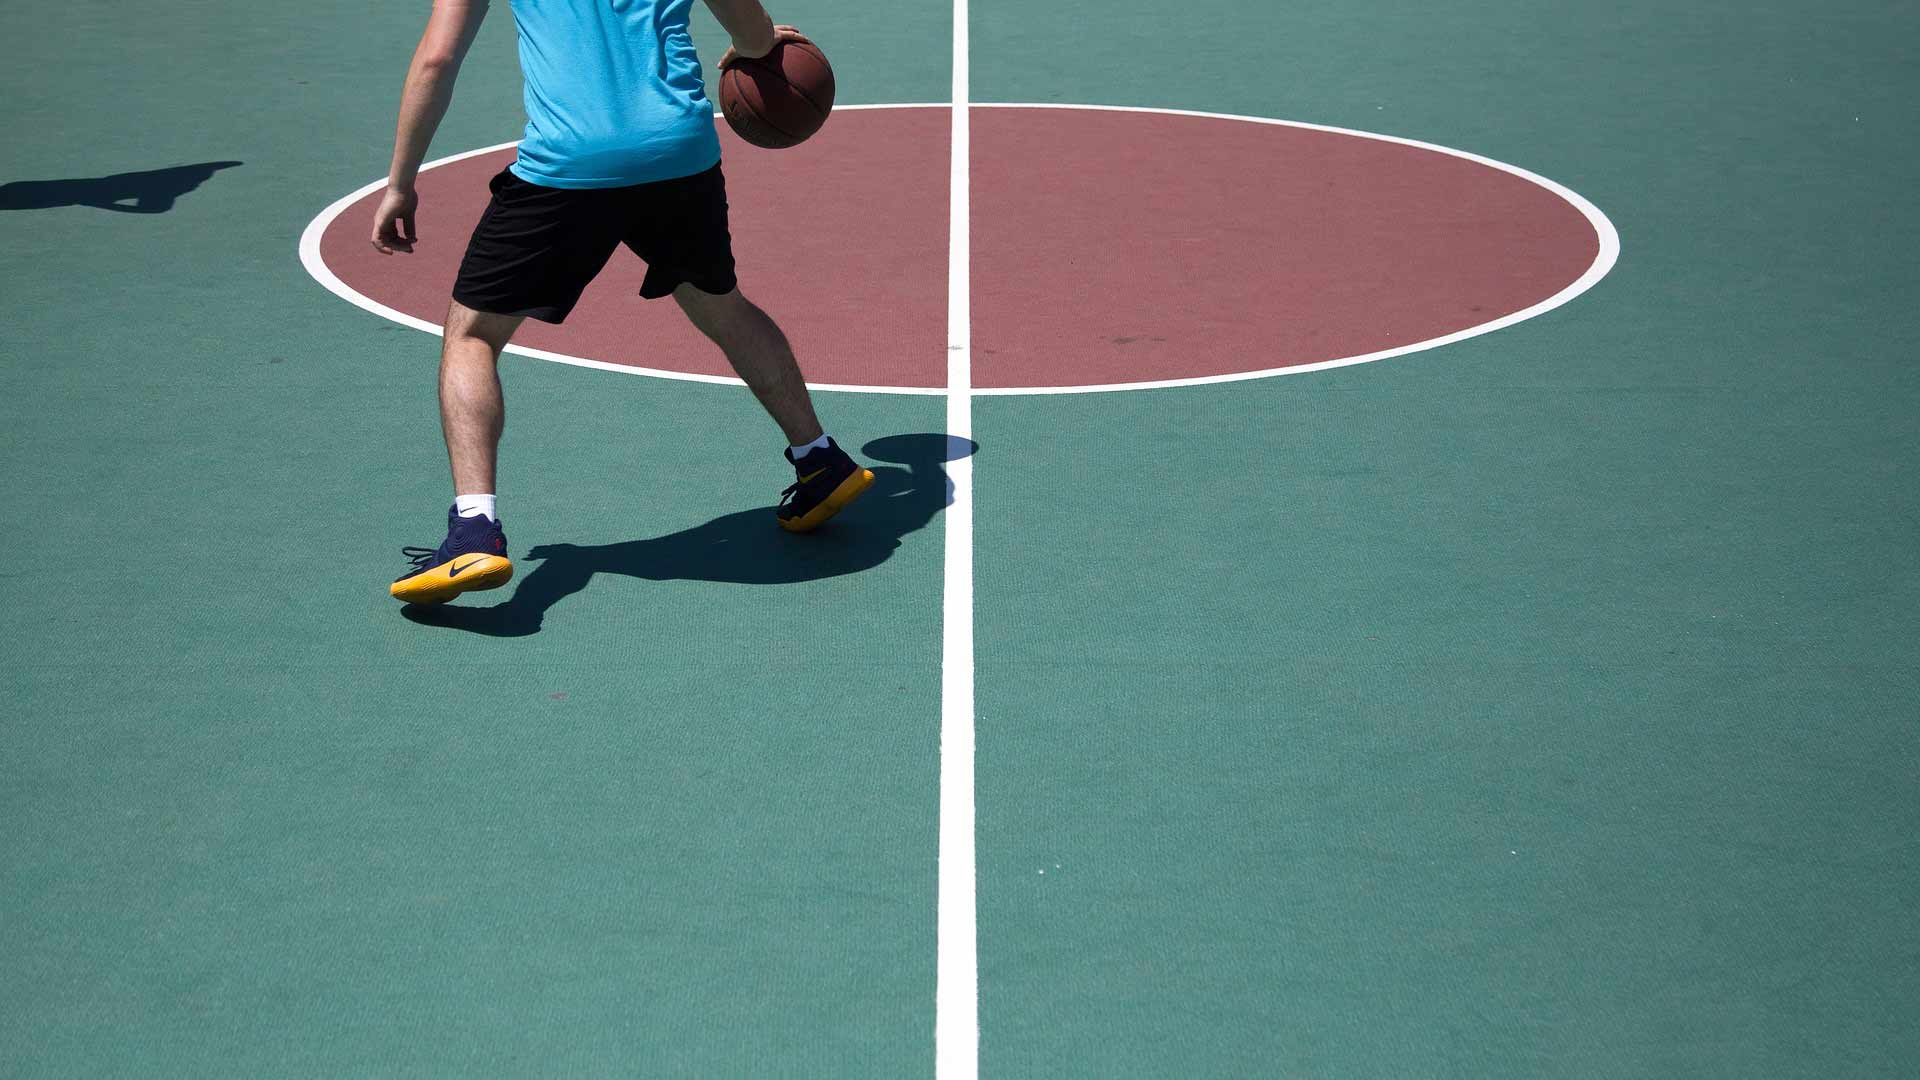 Build State-of-the-Art Courts for Your Community